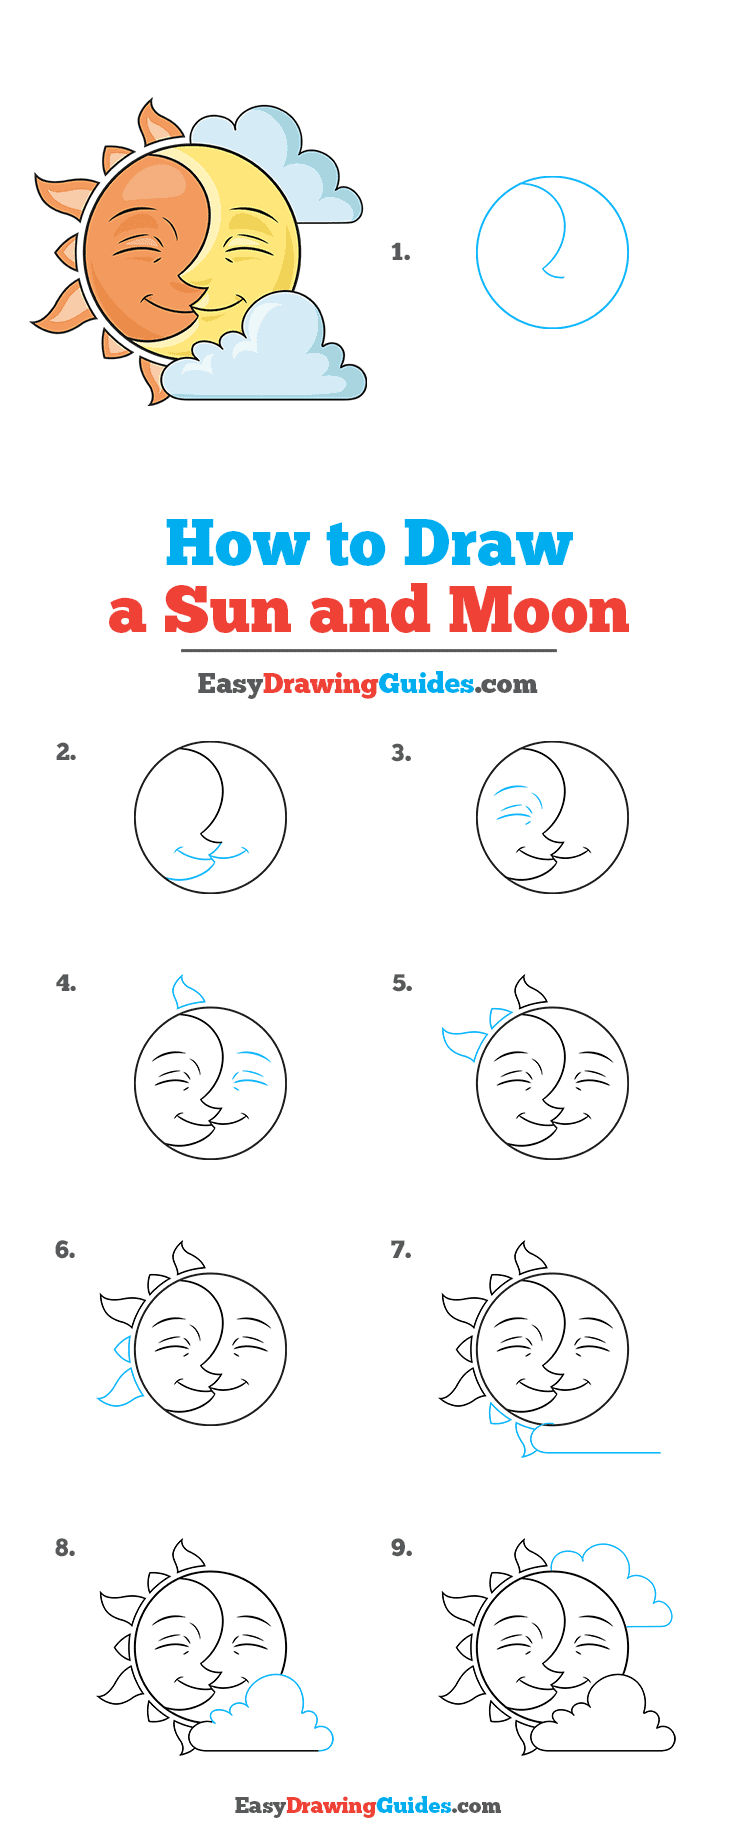 How to Draw Sun and Moon